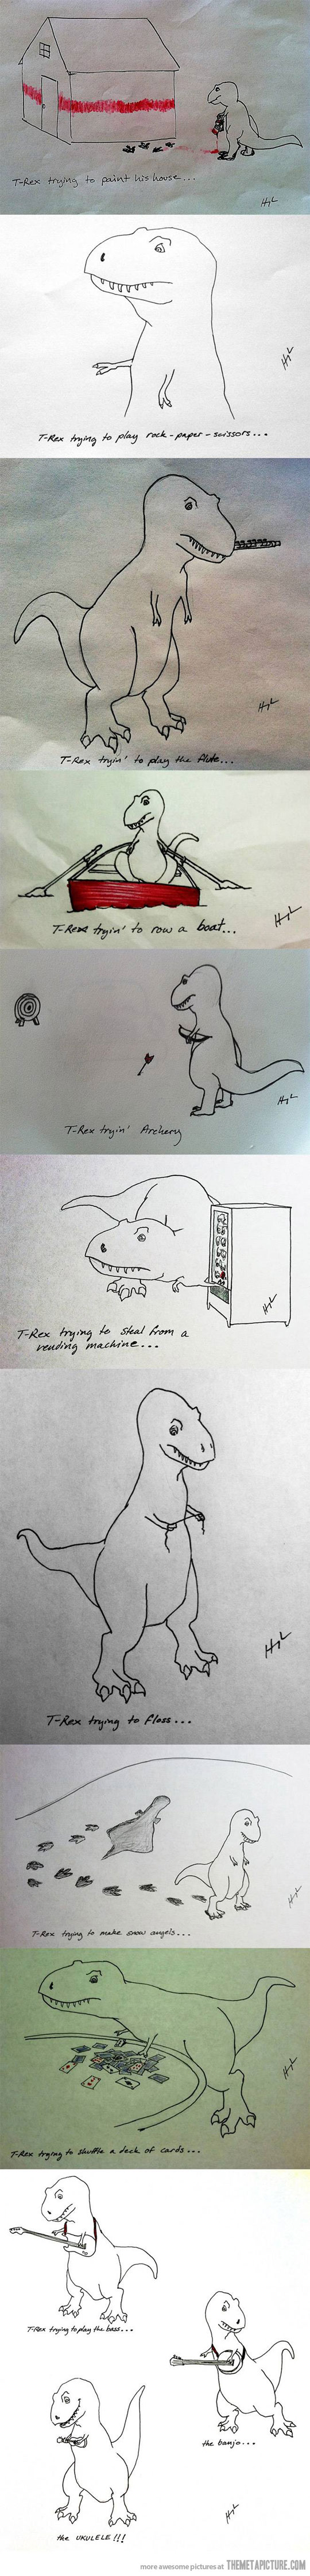 T-Rex trying things